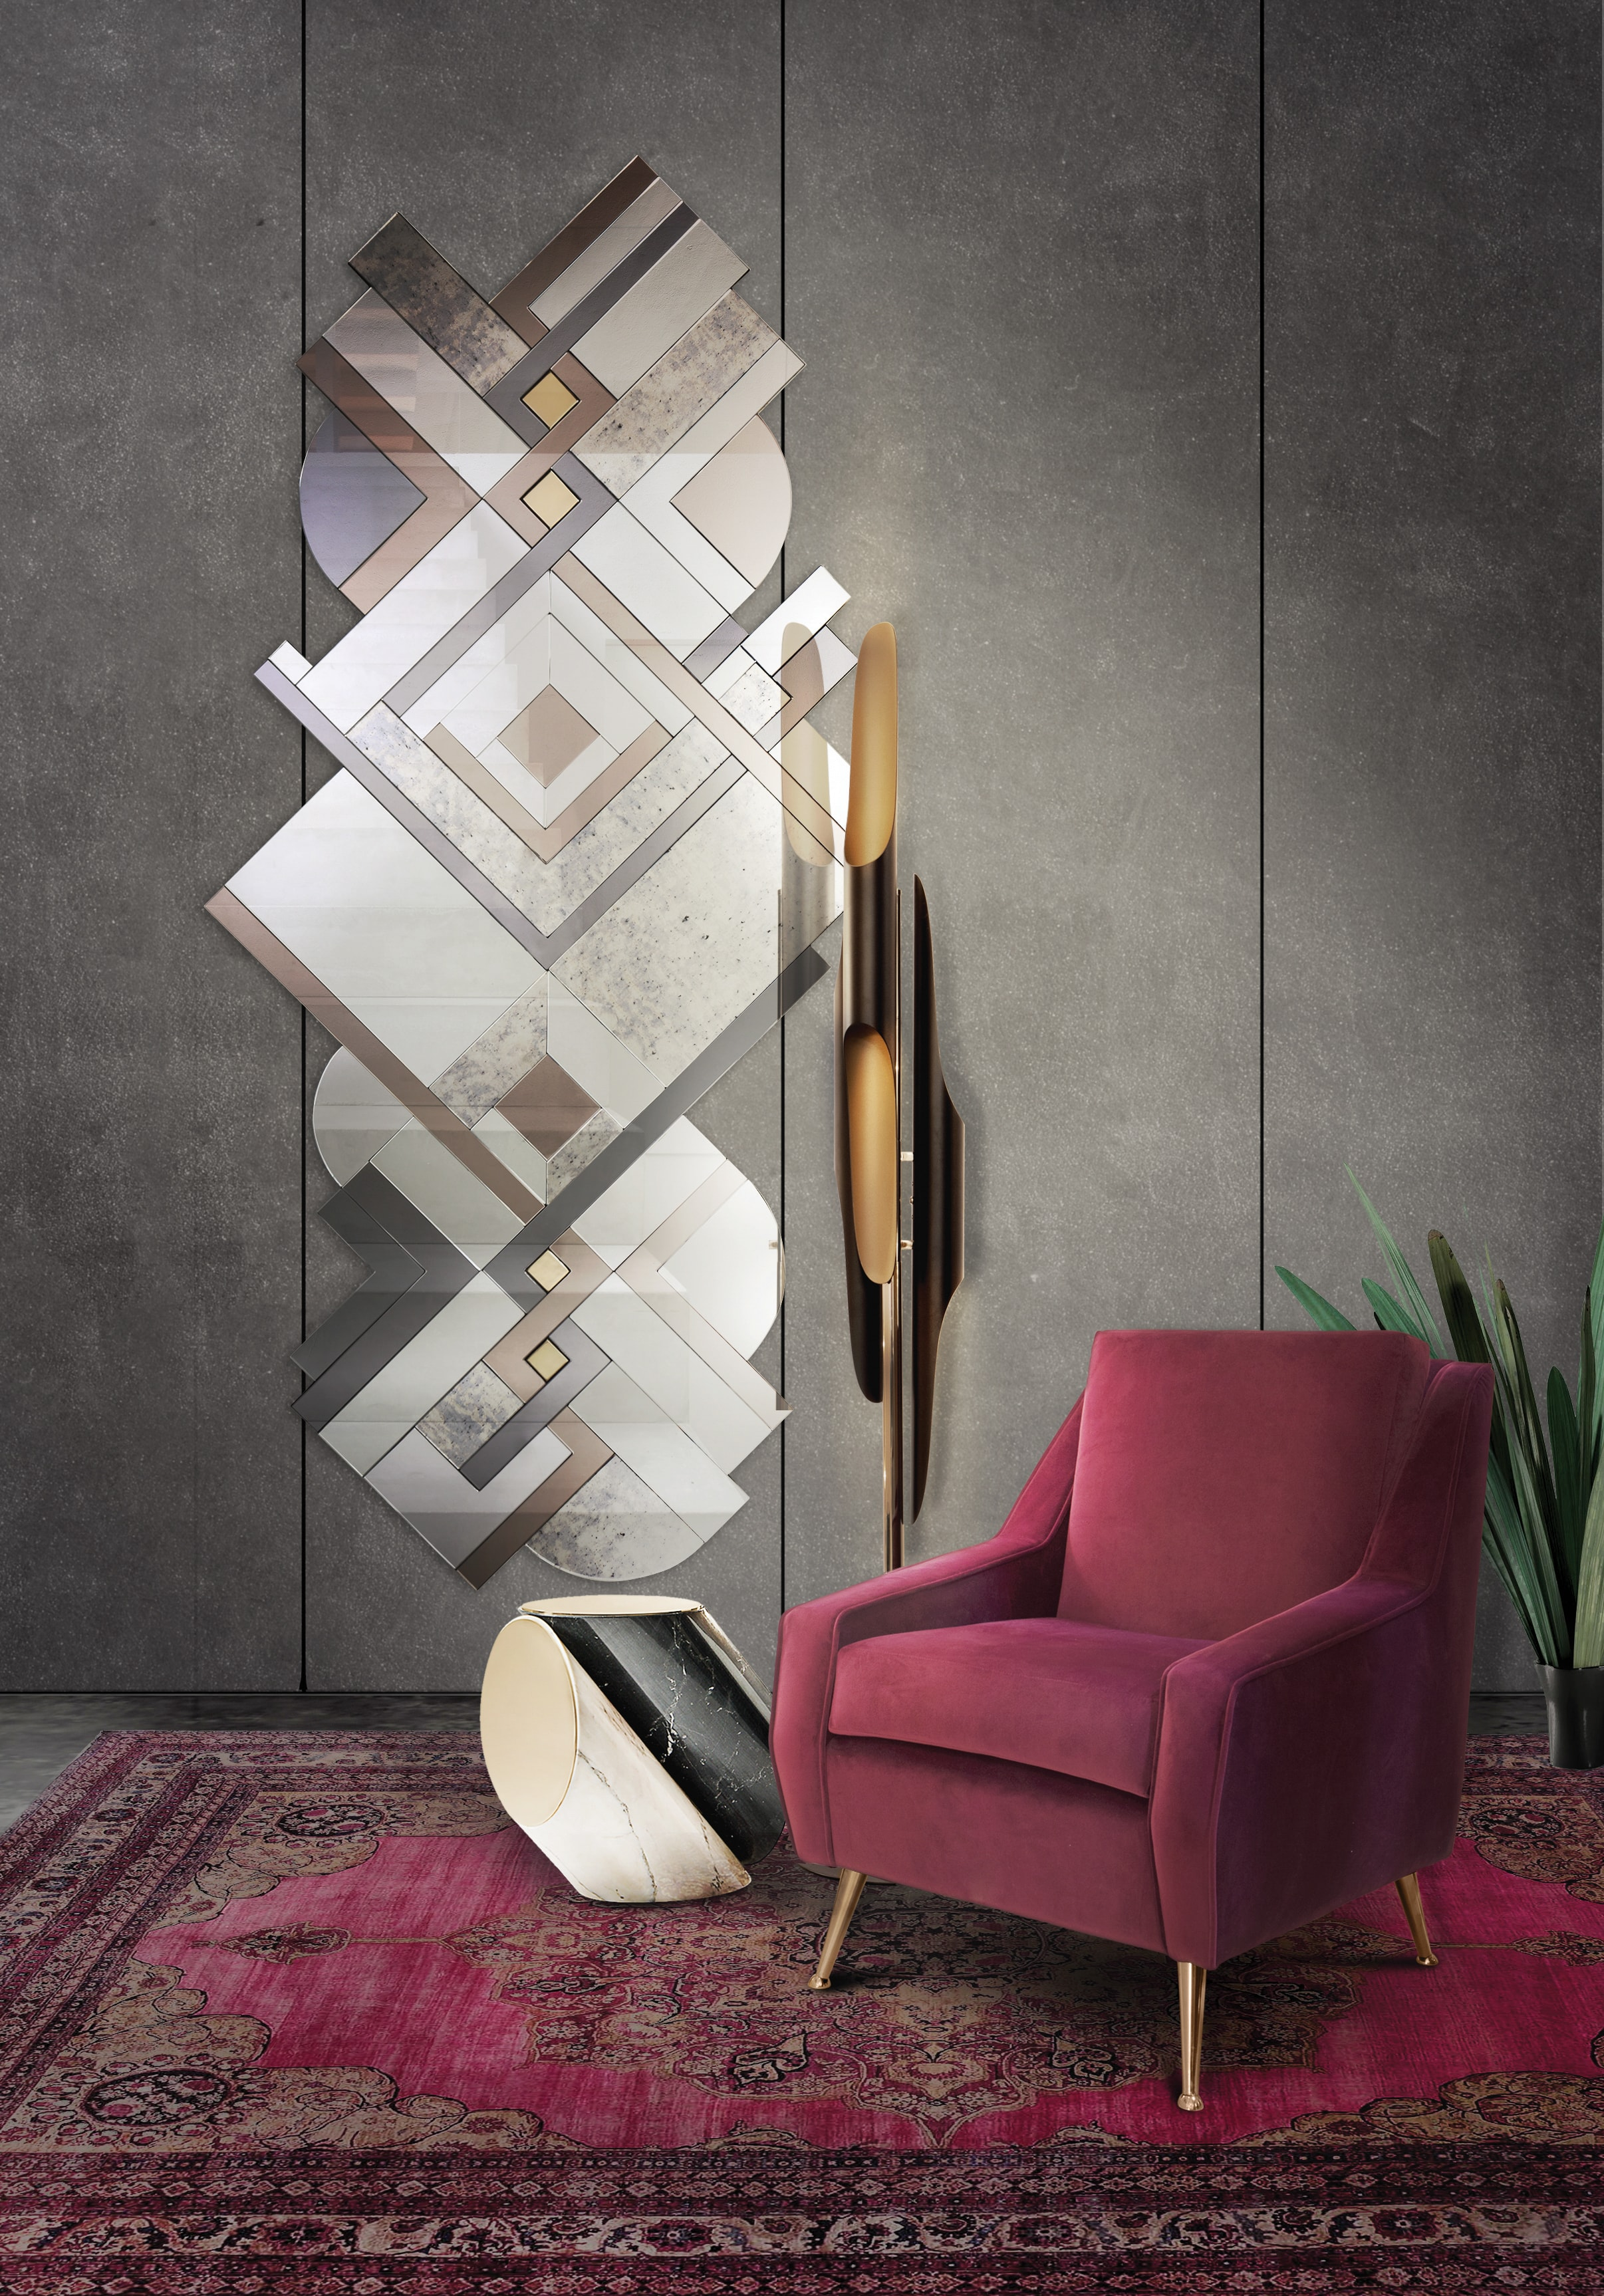 coltrane floor lamp Complement These Wall Lamps With Coltrane Floor Lamp! Complement These Wall Lamps With Coltrane Floor Lamp6